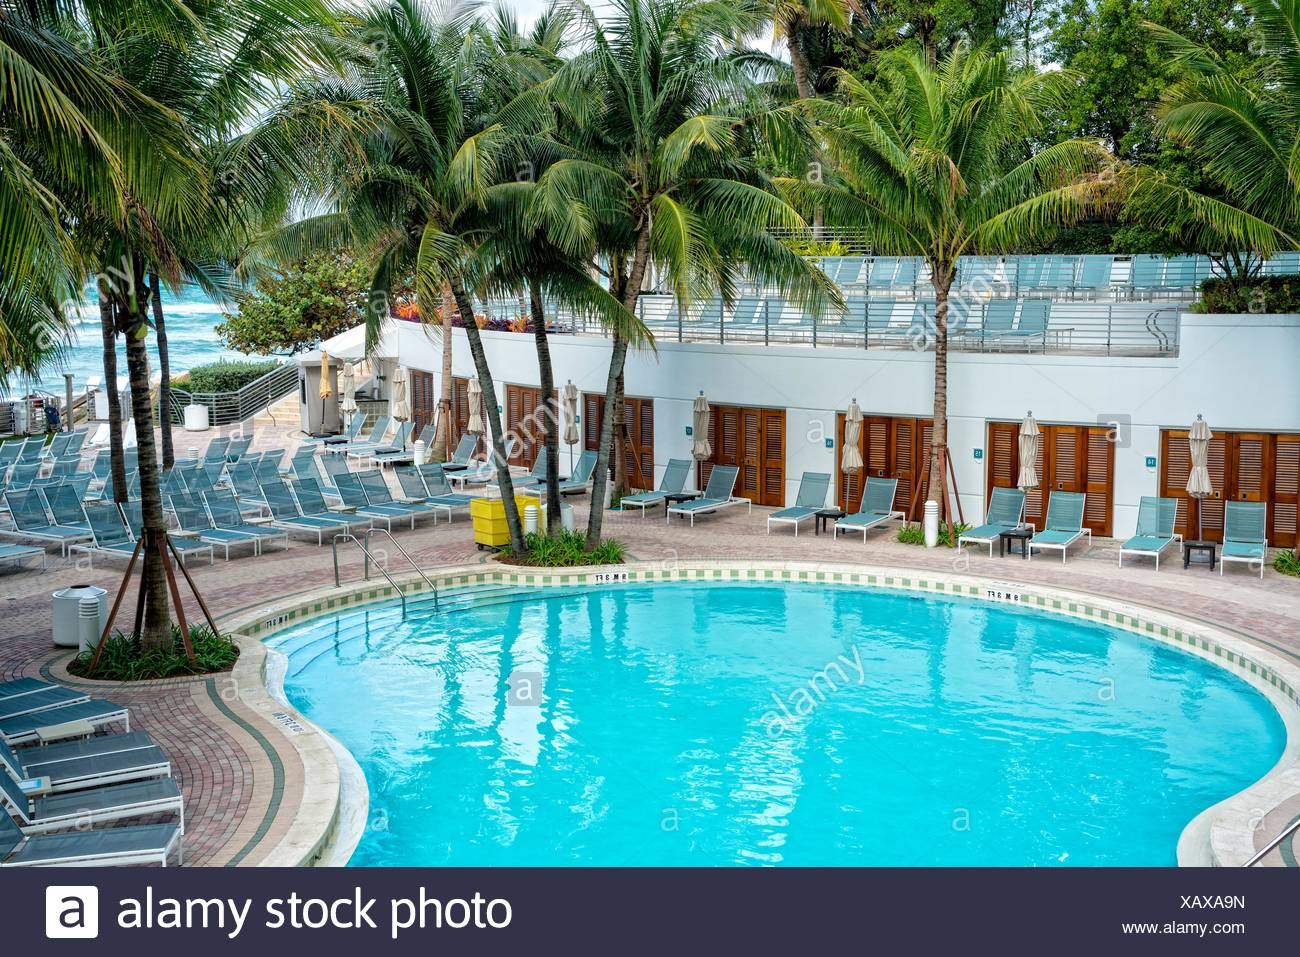 Awesome Lower Pool And Cabana Area With Lounge Chairs Diplomat Gmtry Best Dining Table And Chair Ideas Images Gmtryco